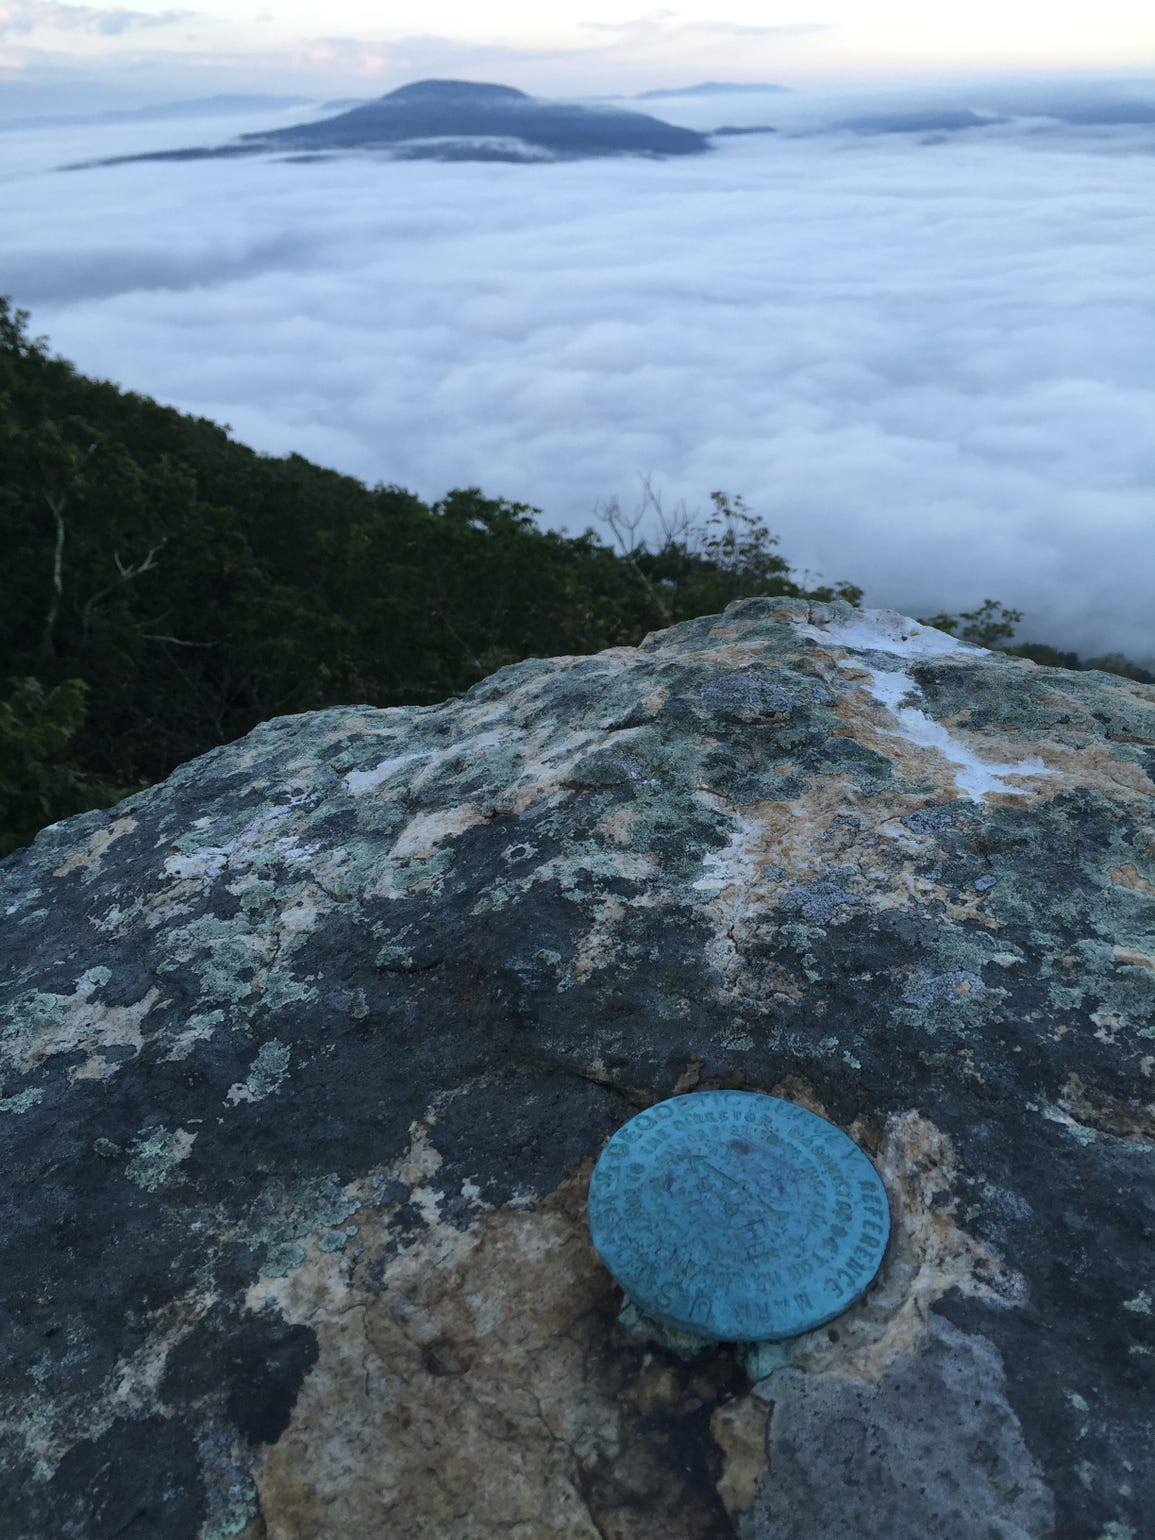 A U.S. Geological Survey marker has been permanently